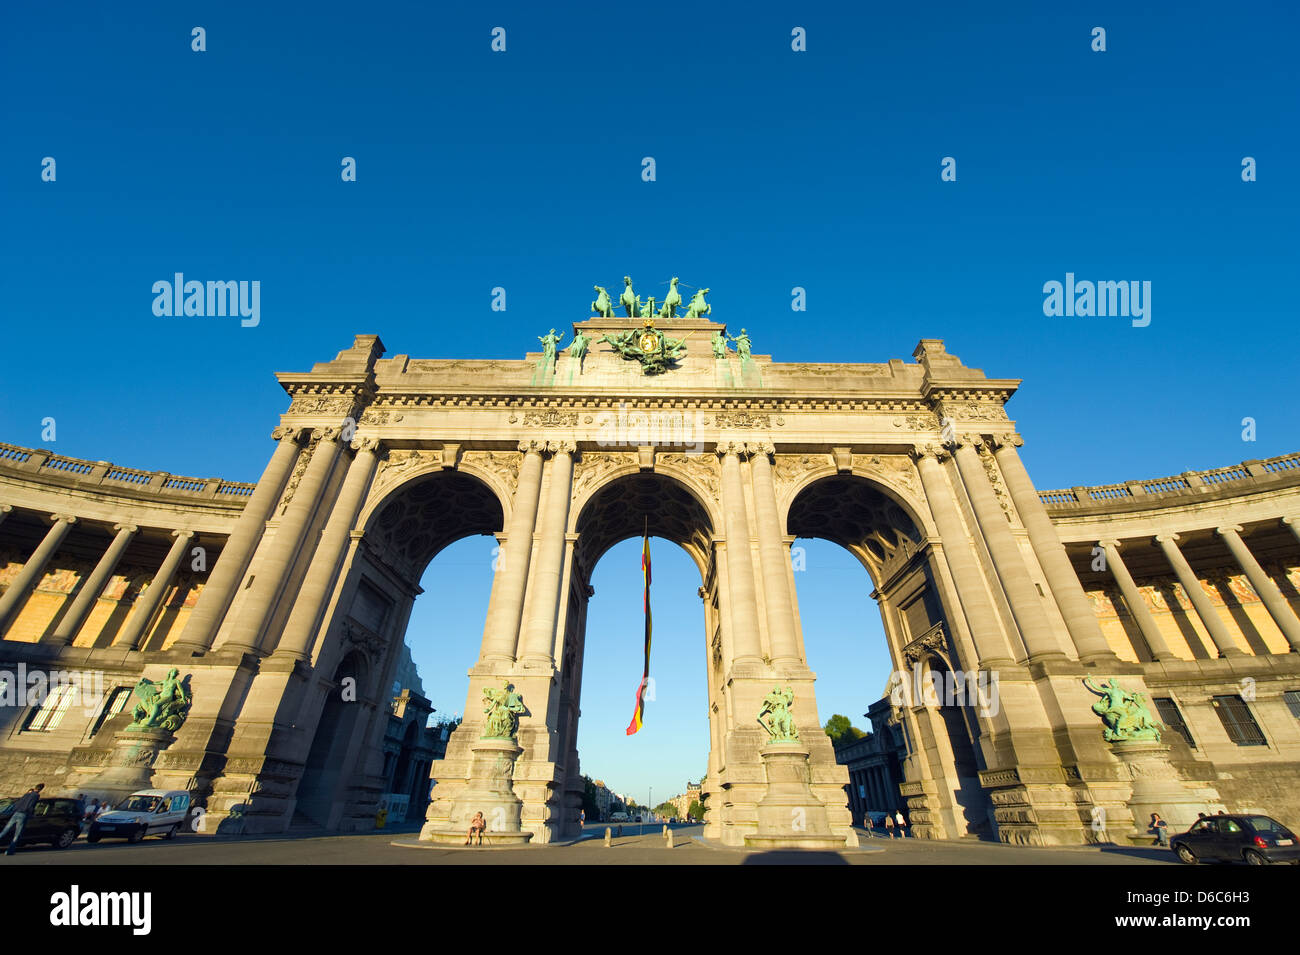 Arcade du Cinquantenaire, arch built in 1880 to celebrate 50 years of Belgian independence,  Belgium; Blue sky; - Stock Image